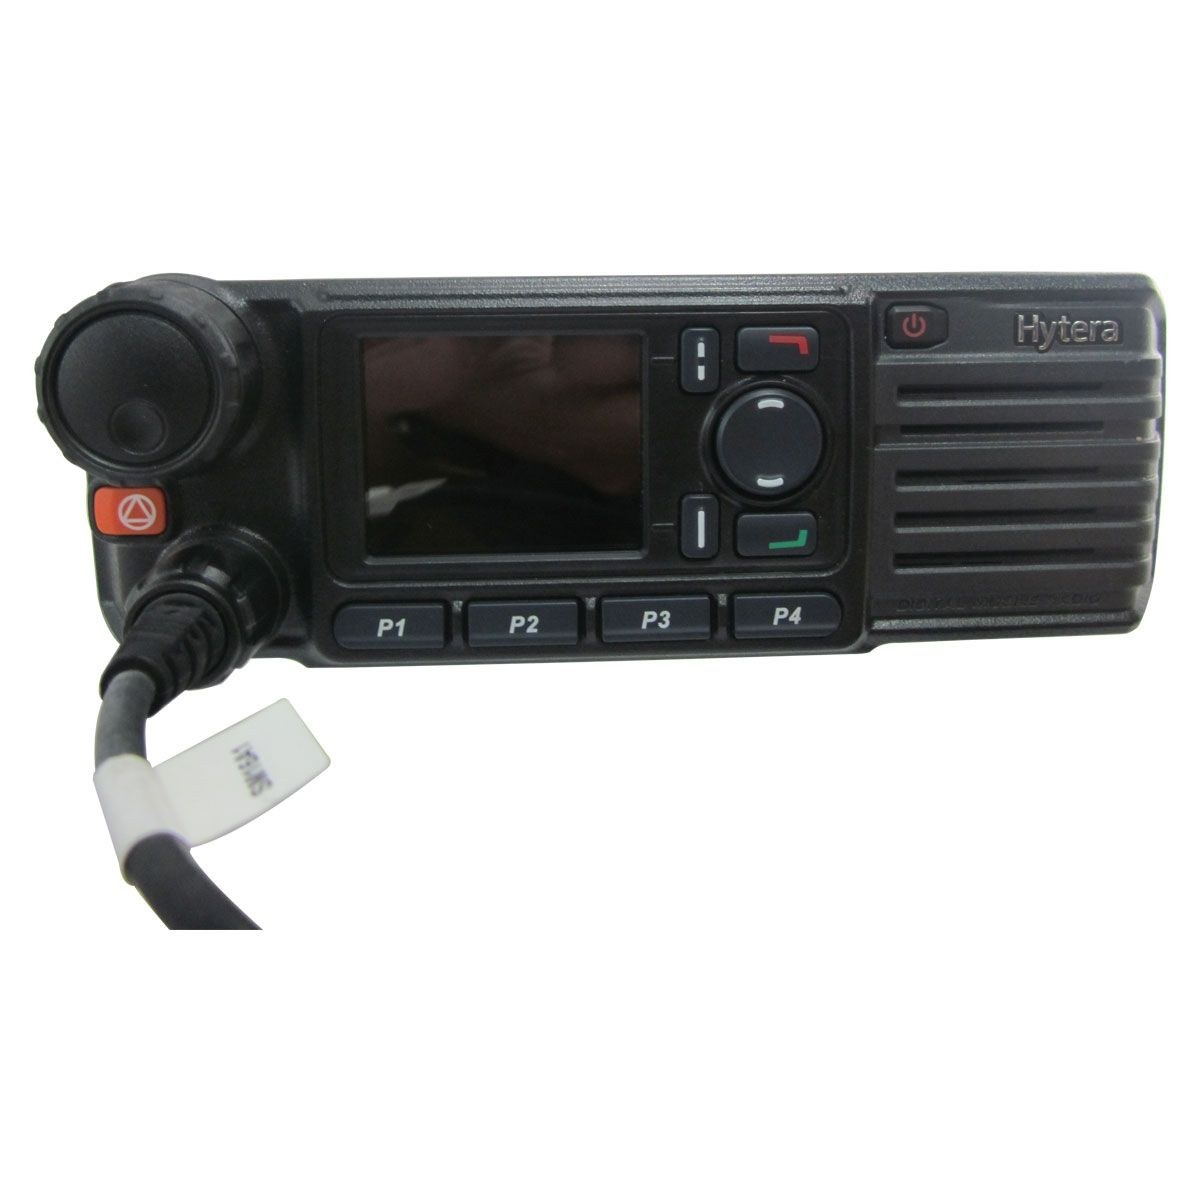 Radio Hytera MD786G Digital